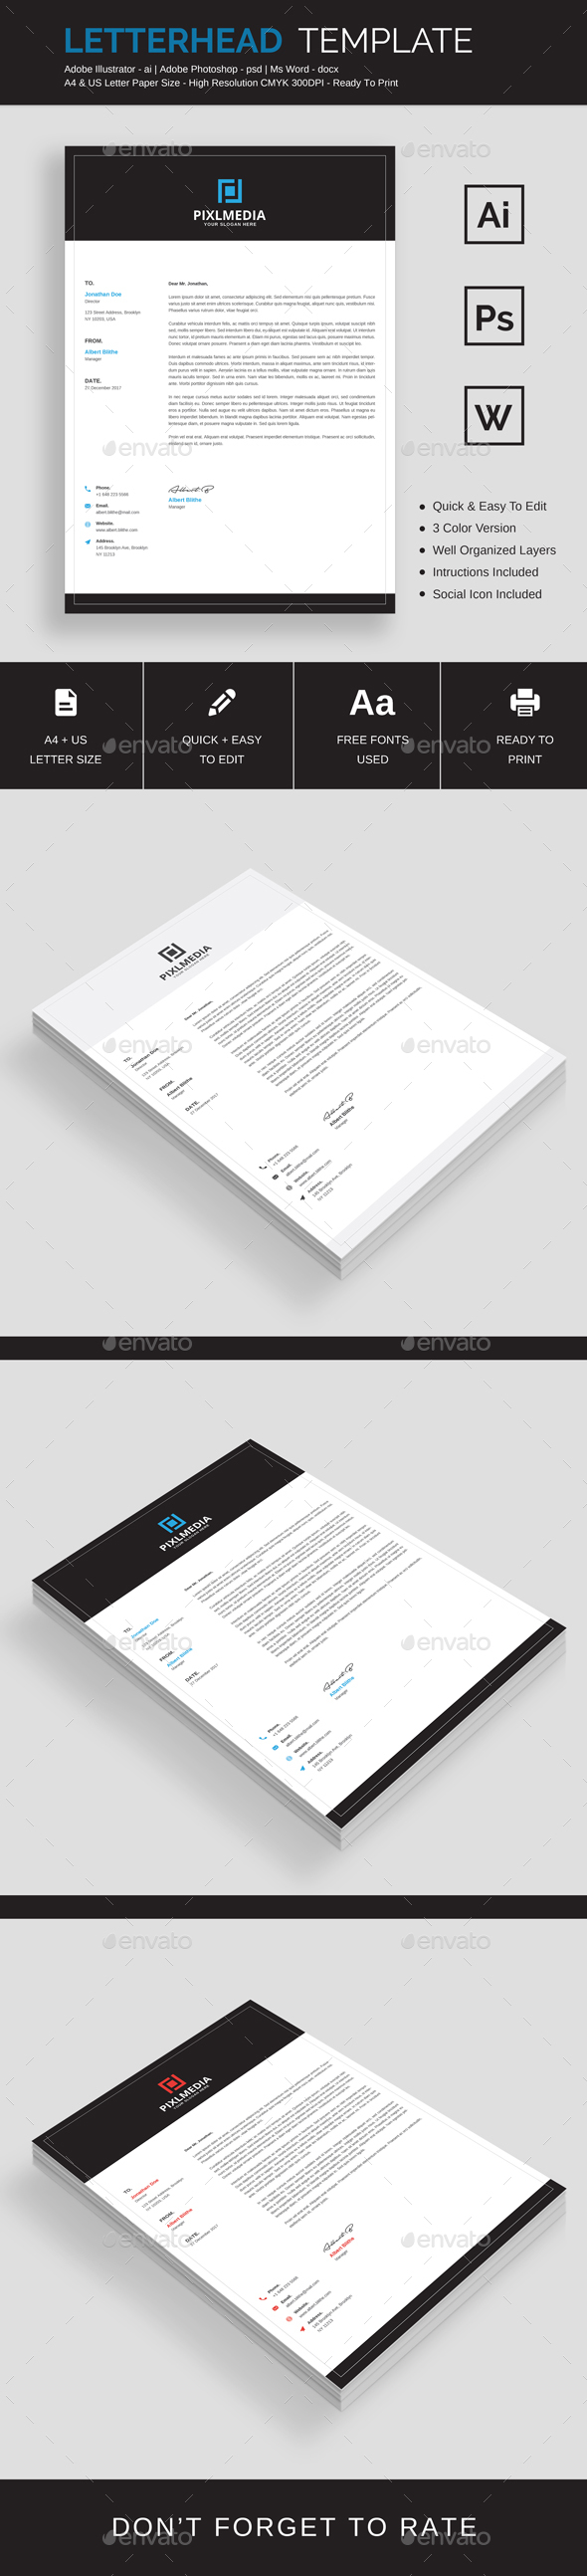 GraphicRiver Letterhead Template 21150097